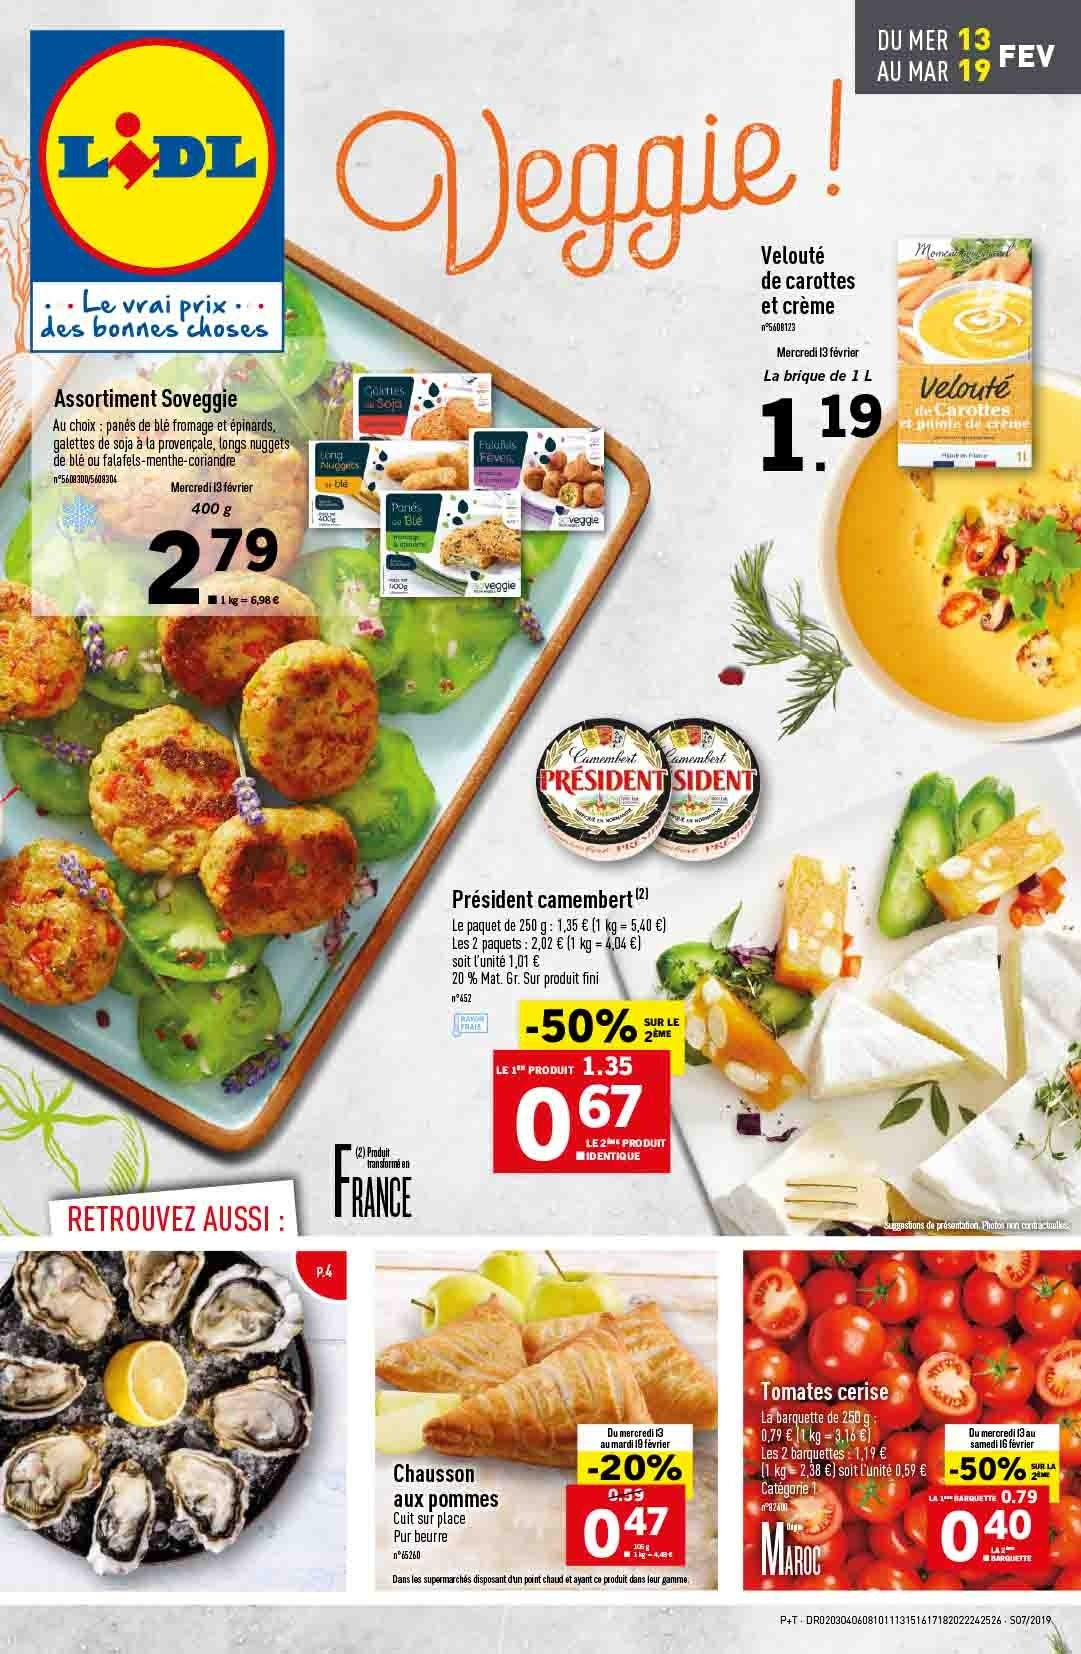 Catalogue Lidl - 13.02.2019 - 19.02.2019. Page 1.